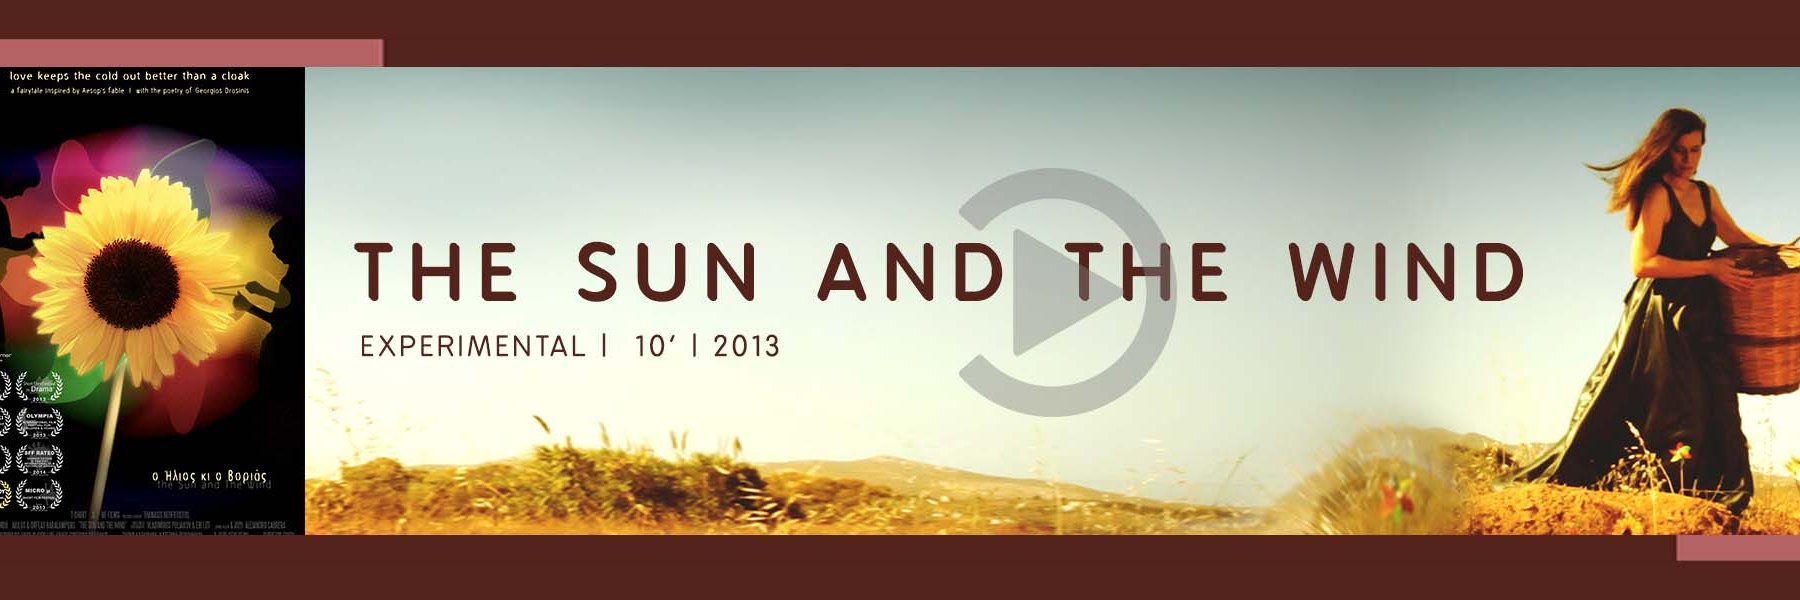 THE SUN AND THE WIND | Short Film by Thanasis Neofotistos